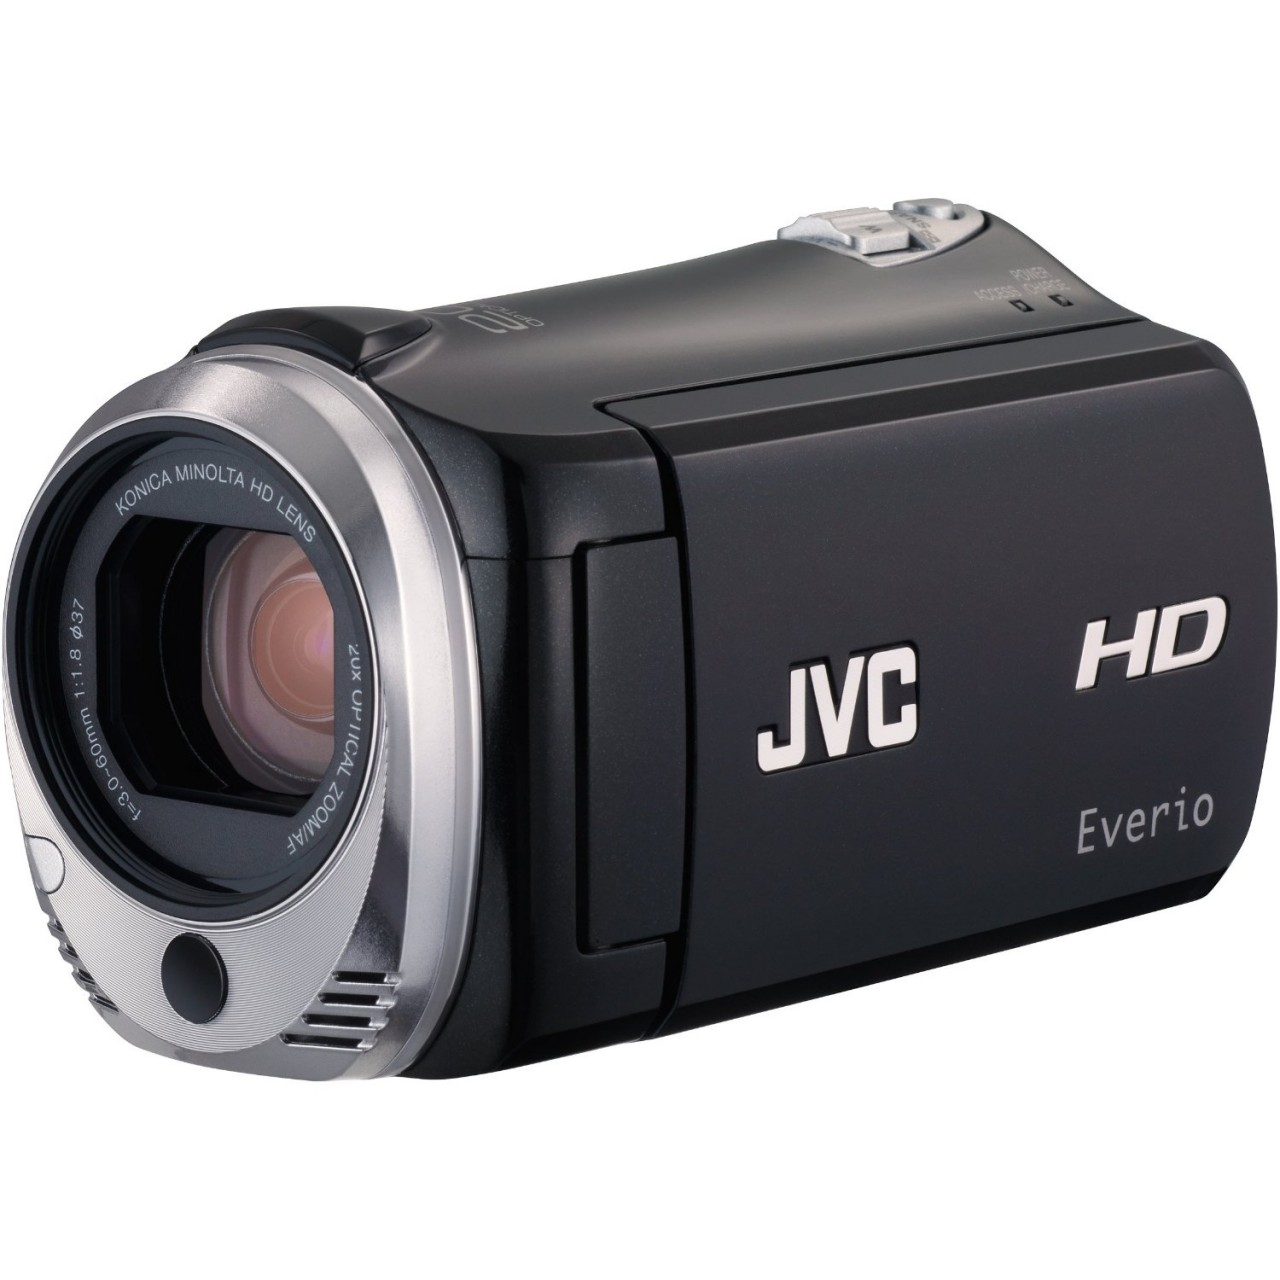 JVC GZ-HM300 Dual Slot High Definition Camcorder